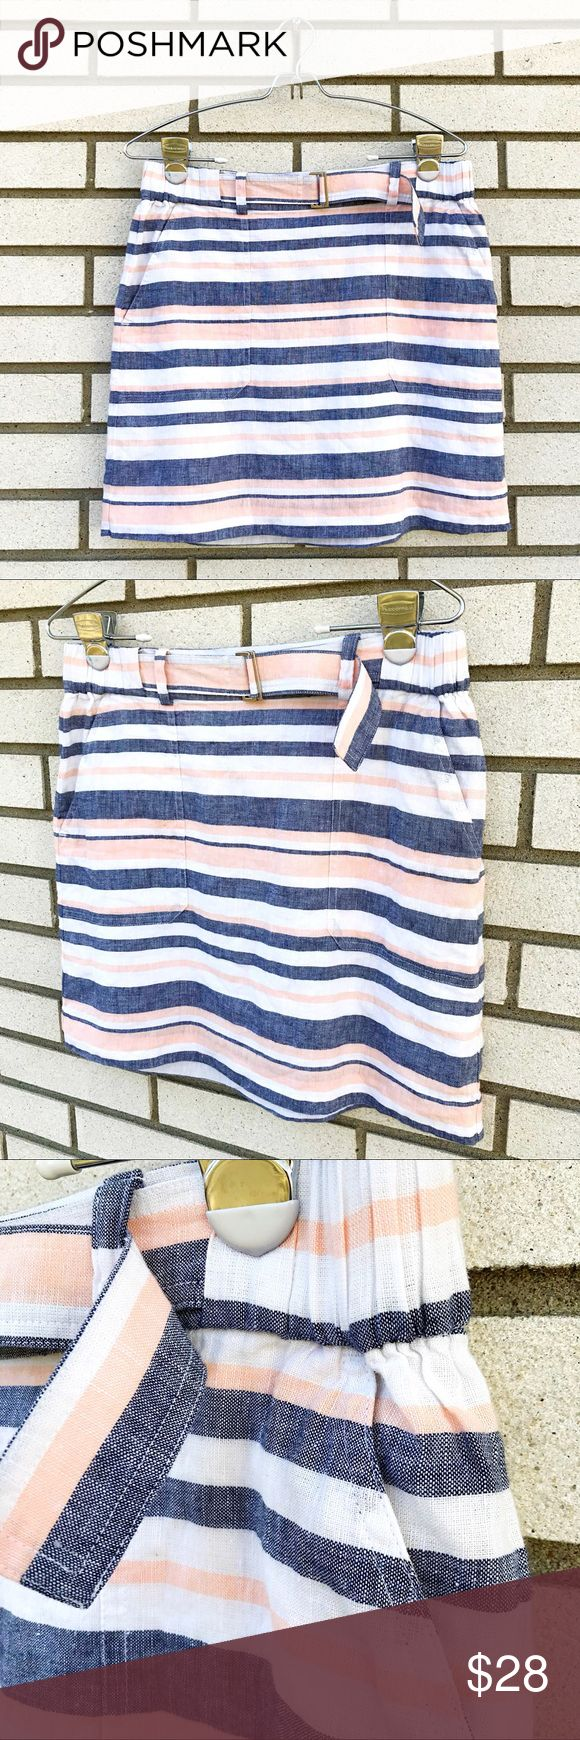 """Banana Republic Striped Belted Linen Mini Skirt Banana Republic Striped Belted Linen Mini Skirt Sweet, lightweight mini skirt - perfect for summer! Peach, white and navy stripe. Patch pockets at hips. Elastic waist from side hips, throughout back. Fully lined. Outer - 55% linen, 45% cotton, Lining - 100% cotton. 16"""" in length, 15"""" across waist unstretched. Size S. Excellent used condition. Banana Republic Skirts Mini"""